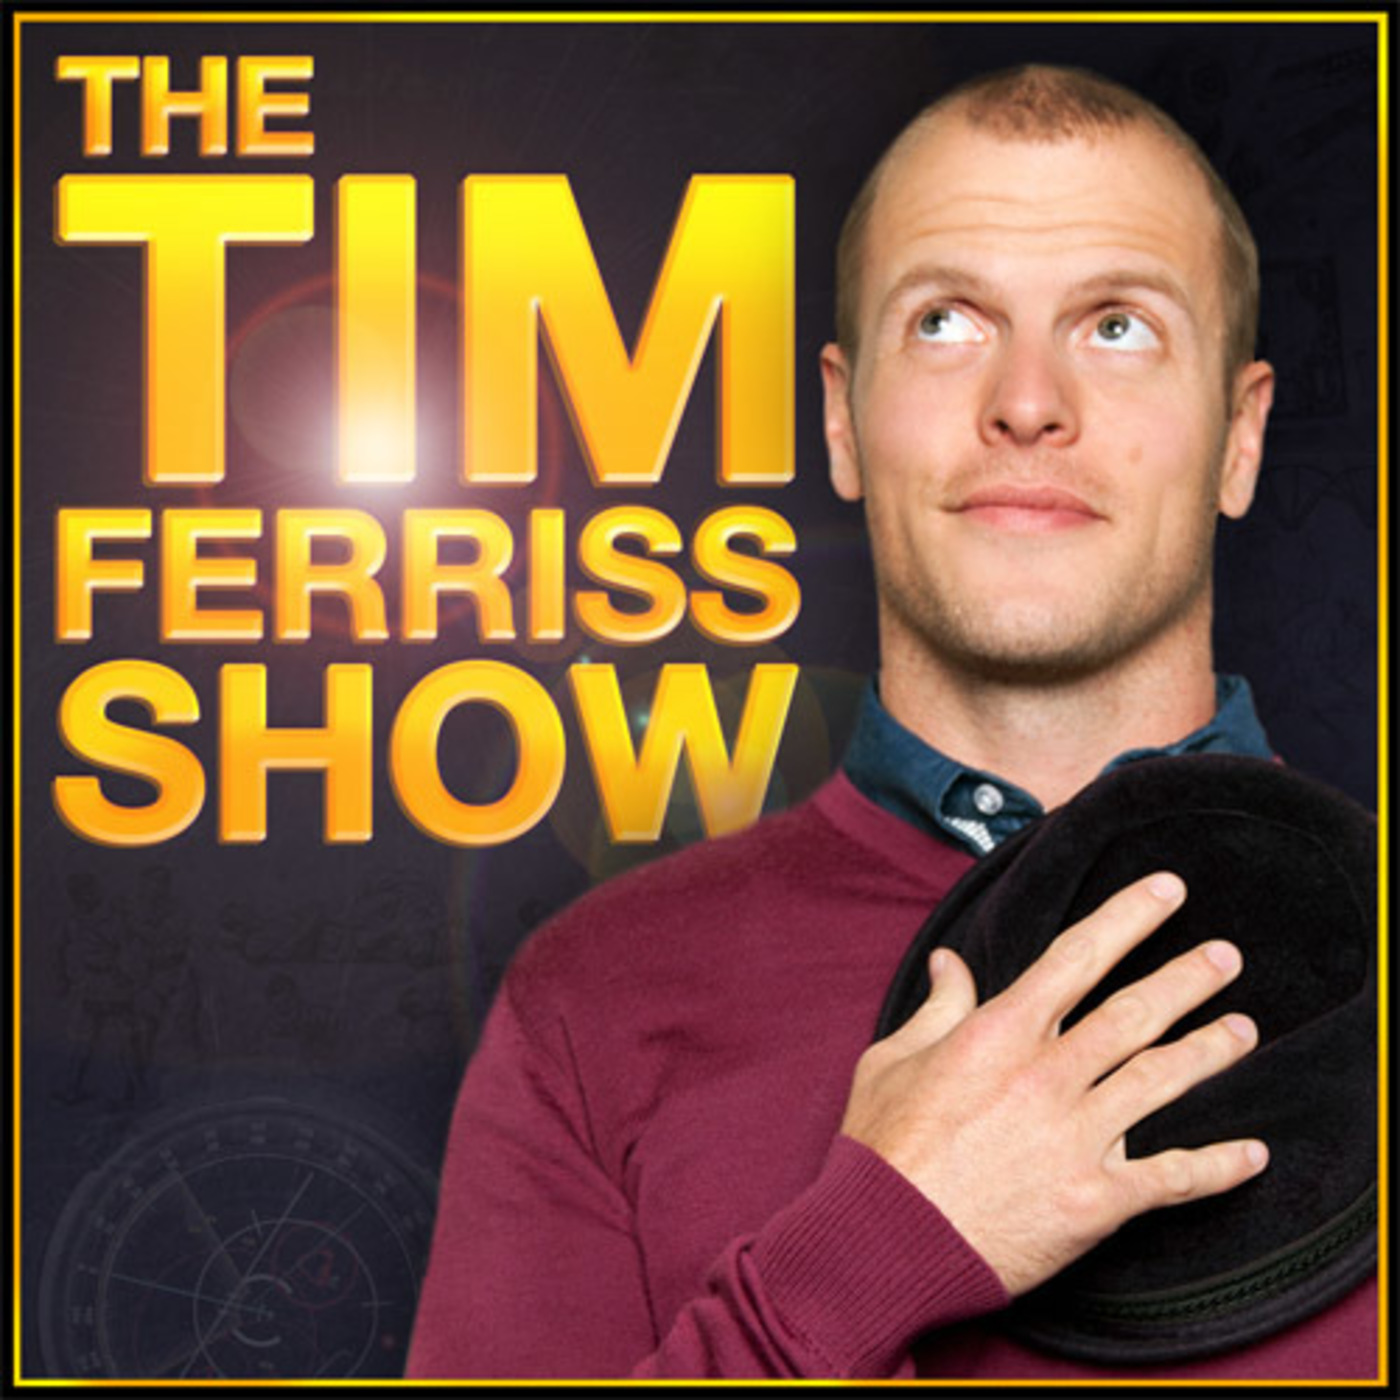 #129: Recommendations and Resolutions for 2016 - Kevin Rose and Tim Ferriss